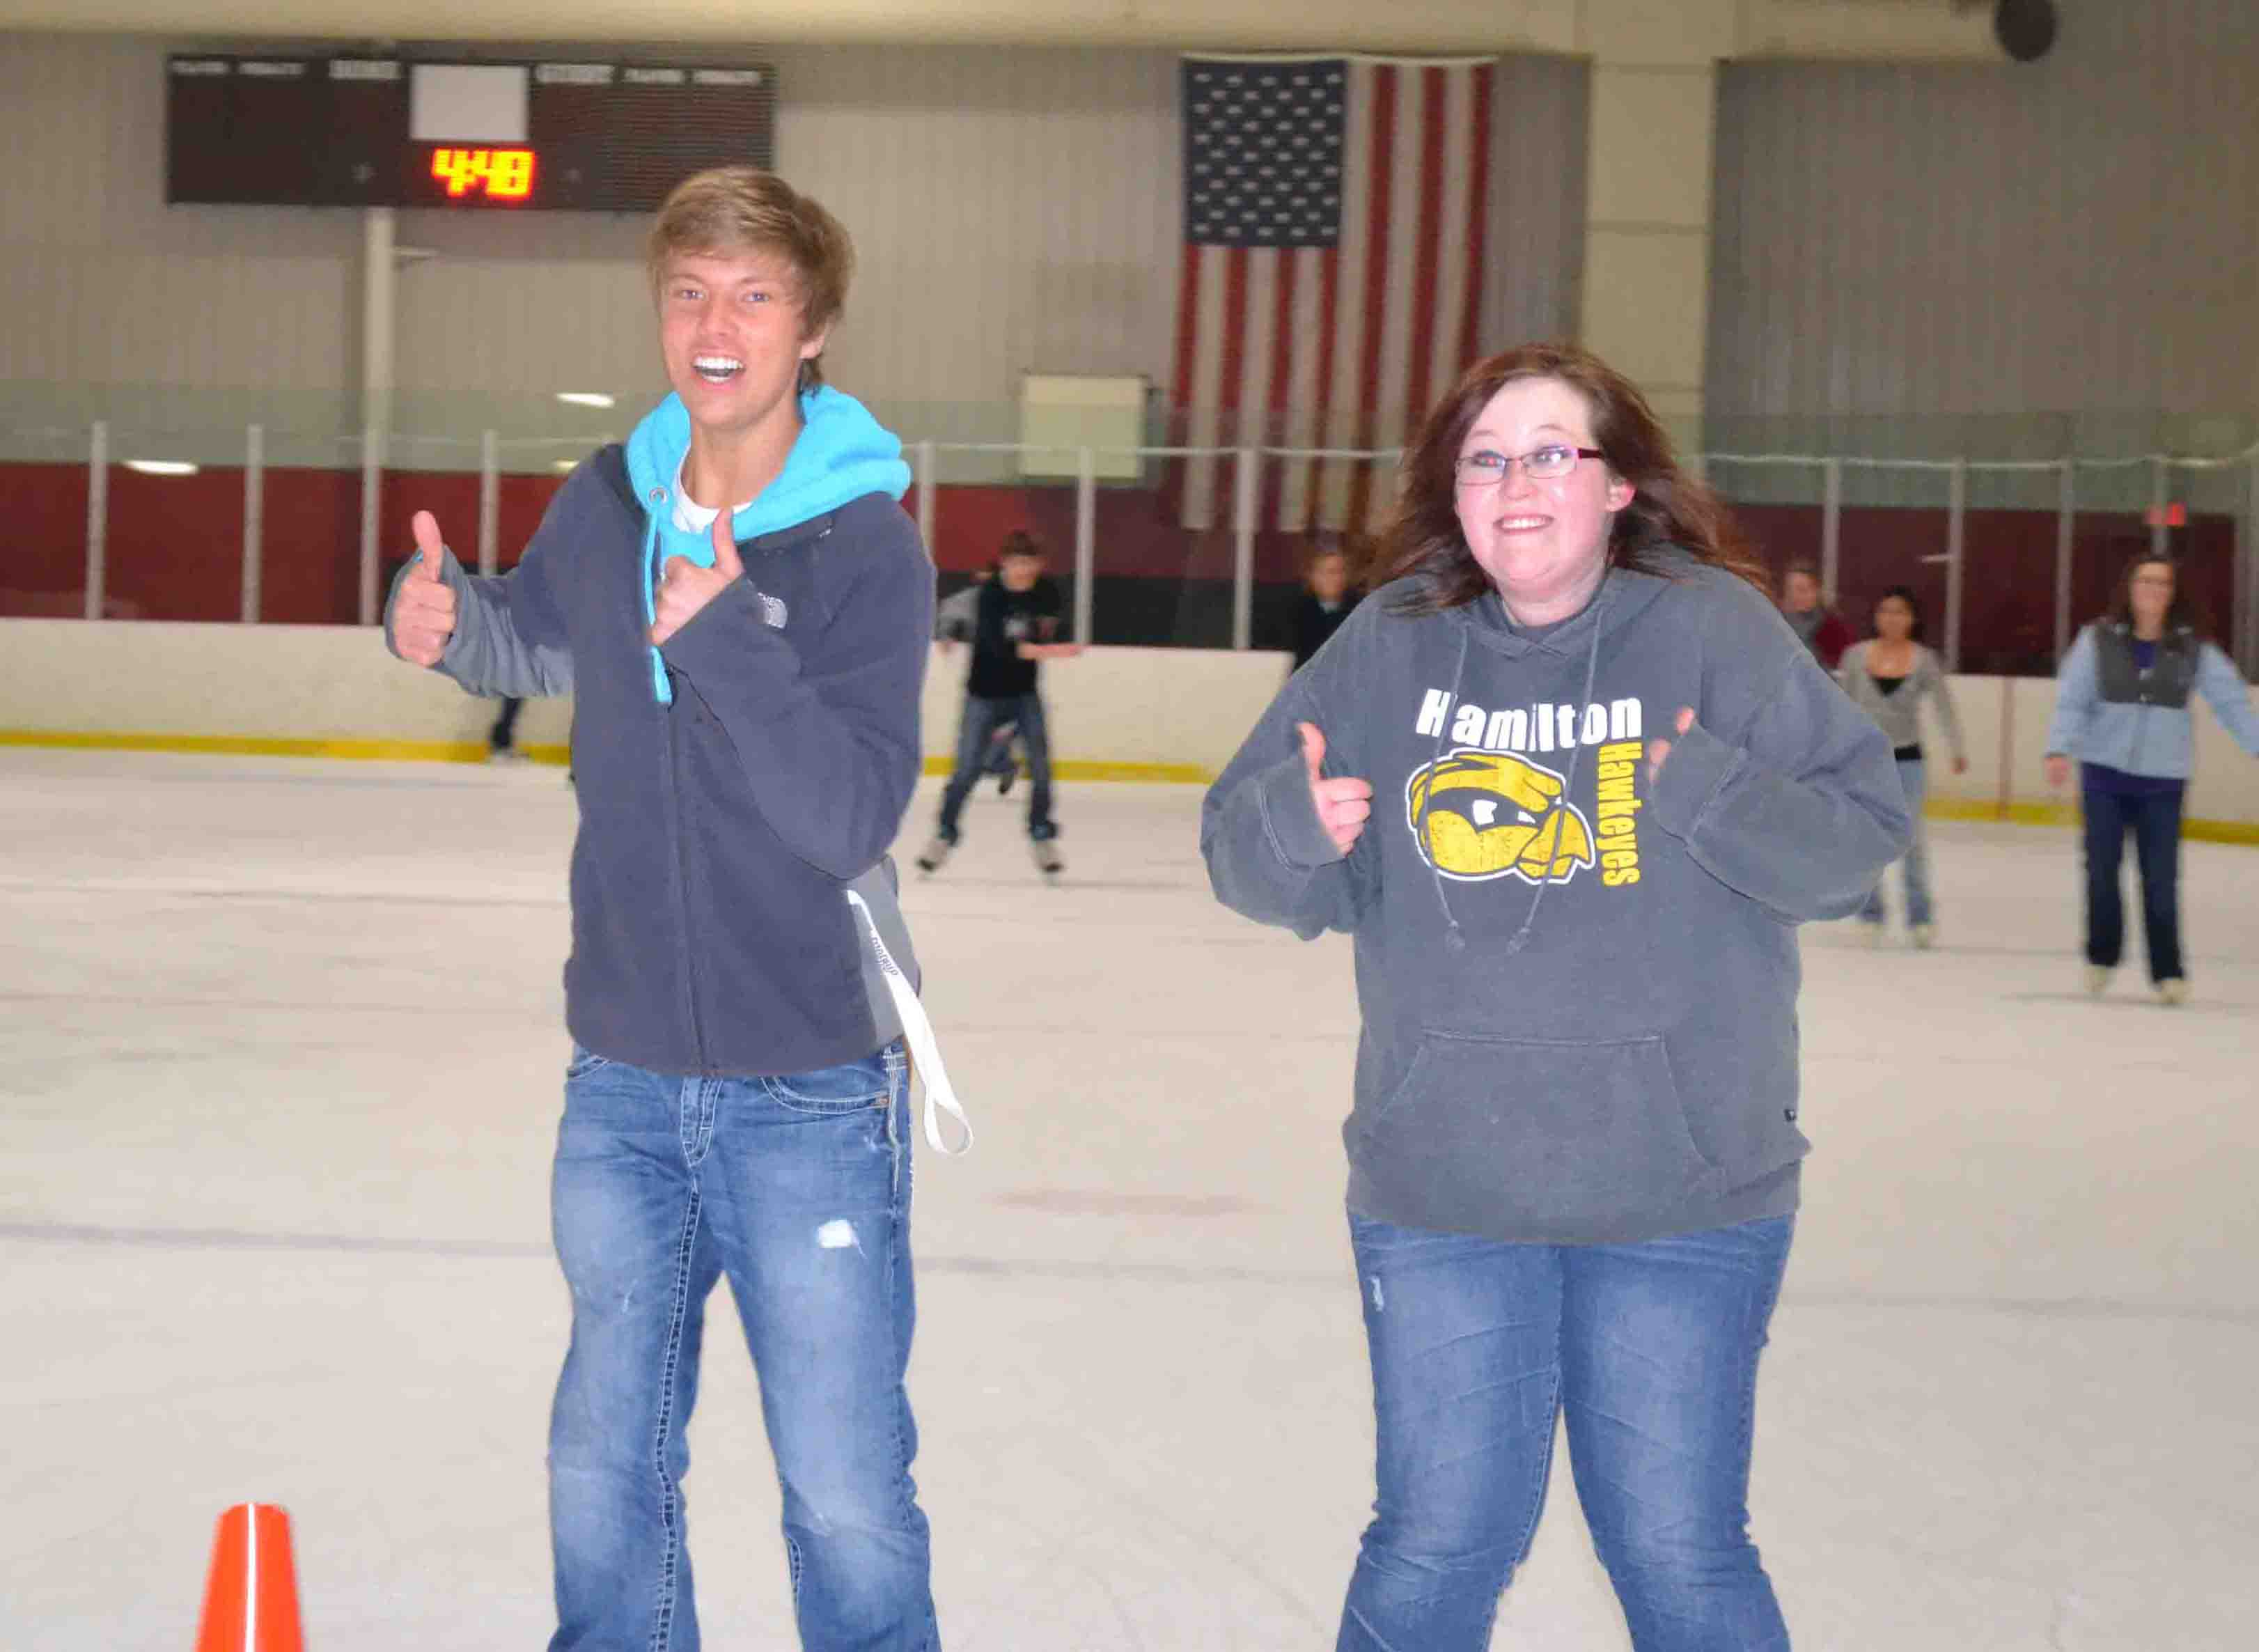 Jason and Courtney show off big smiles and thumbs UP!